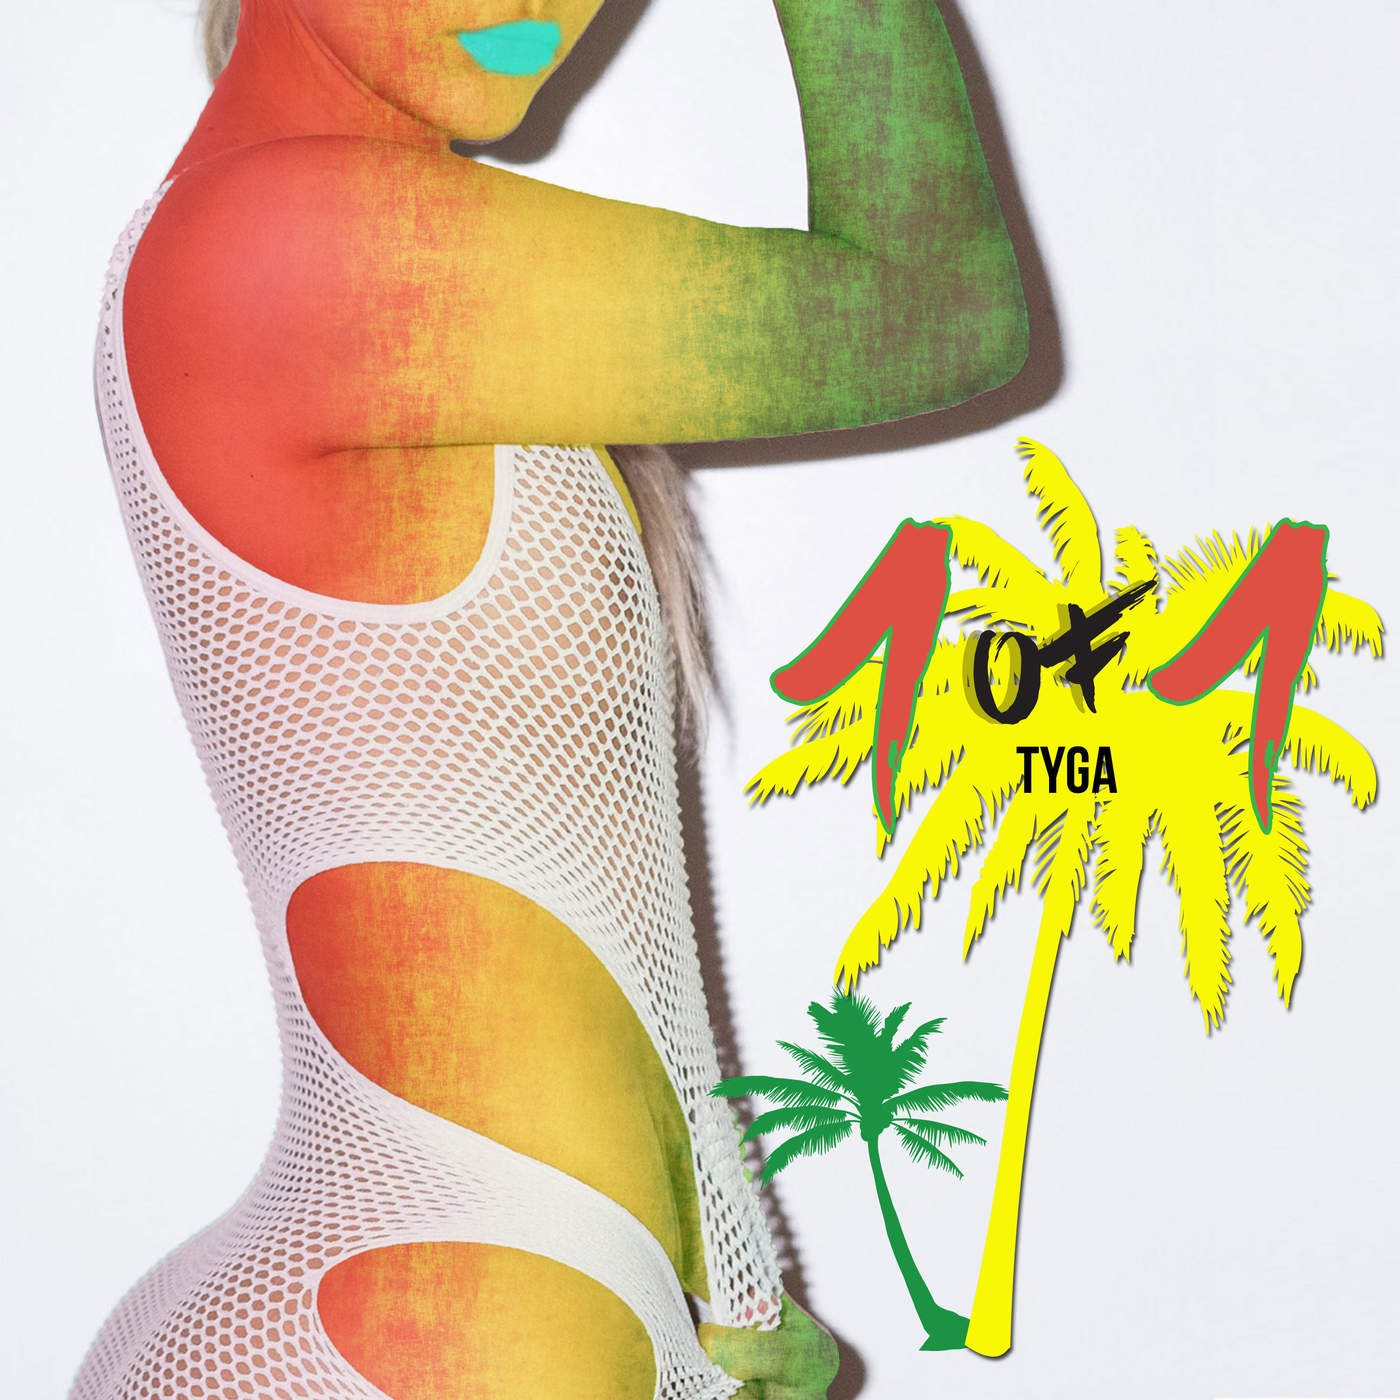 tyga-1-of-1-new-song-tropical-house-is-dead-and-so-am-i-stream